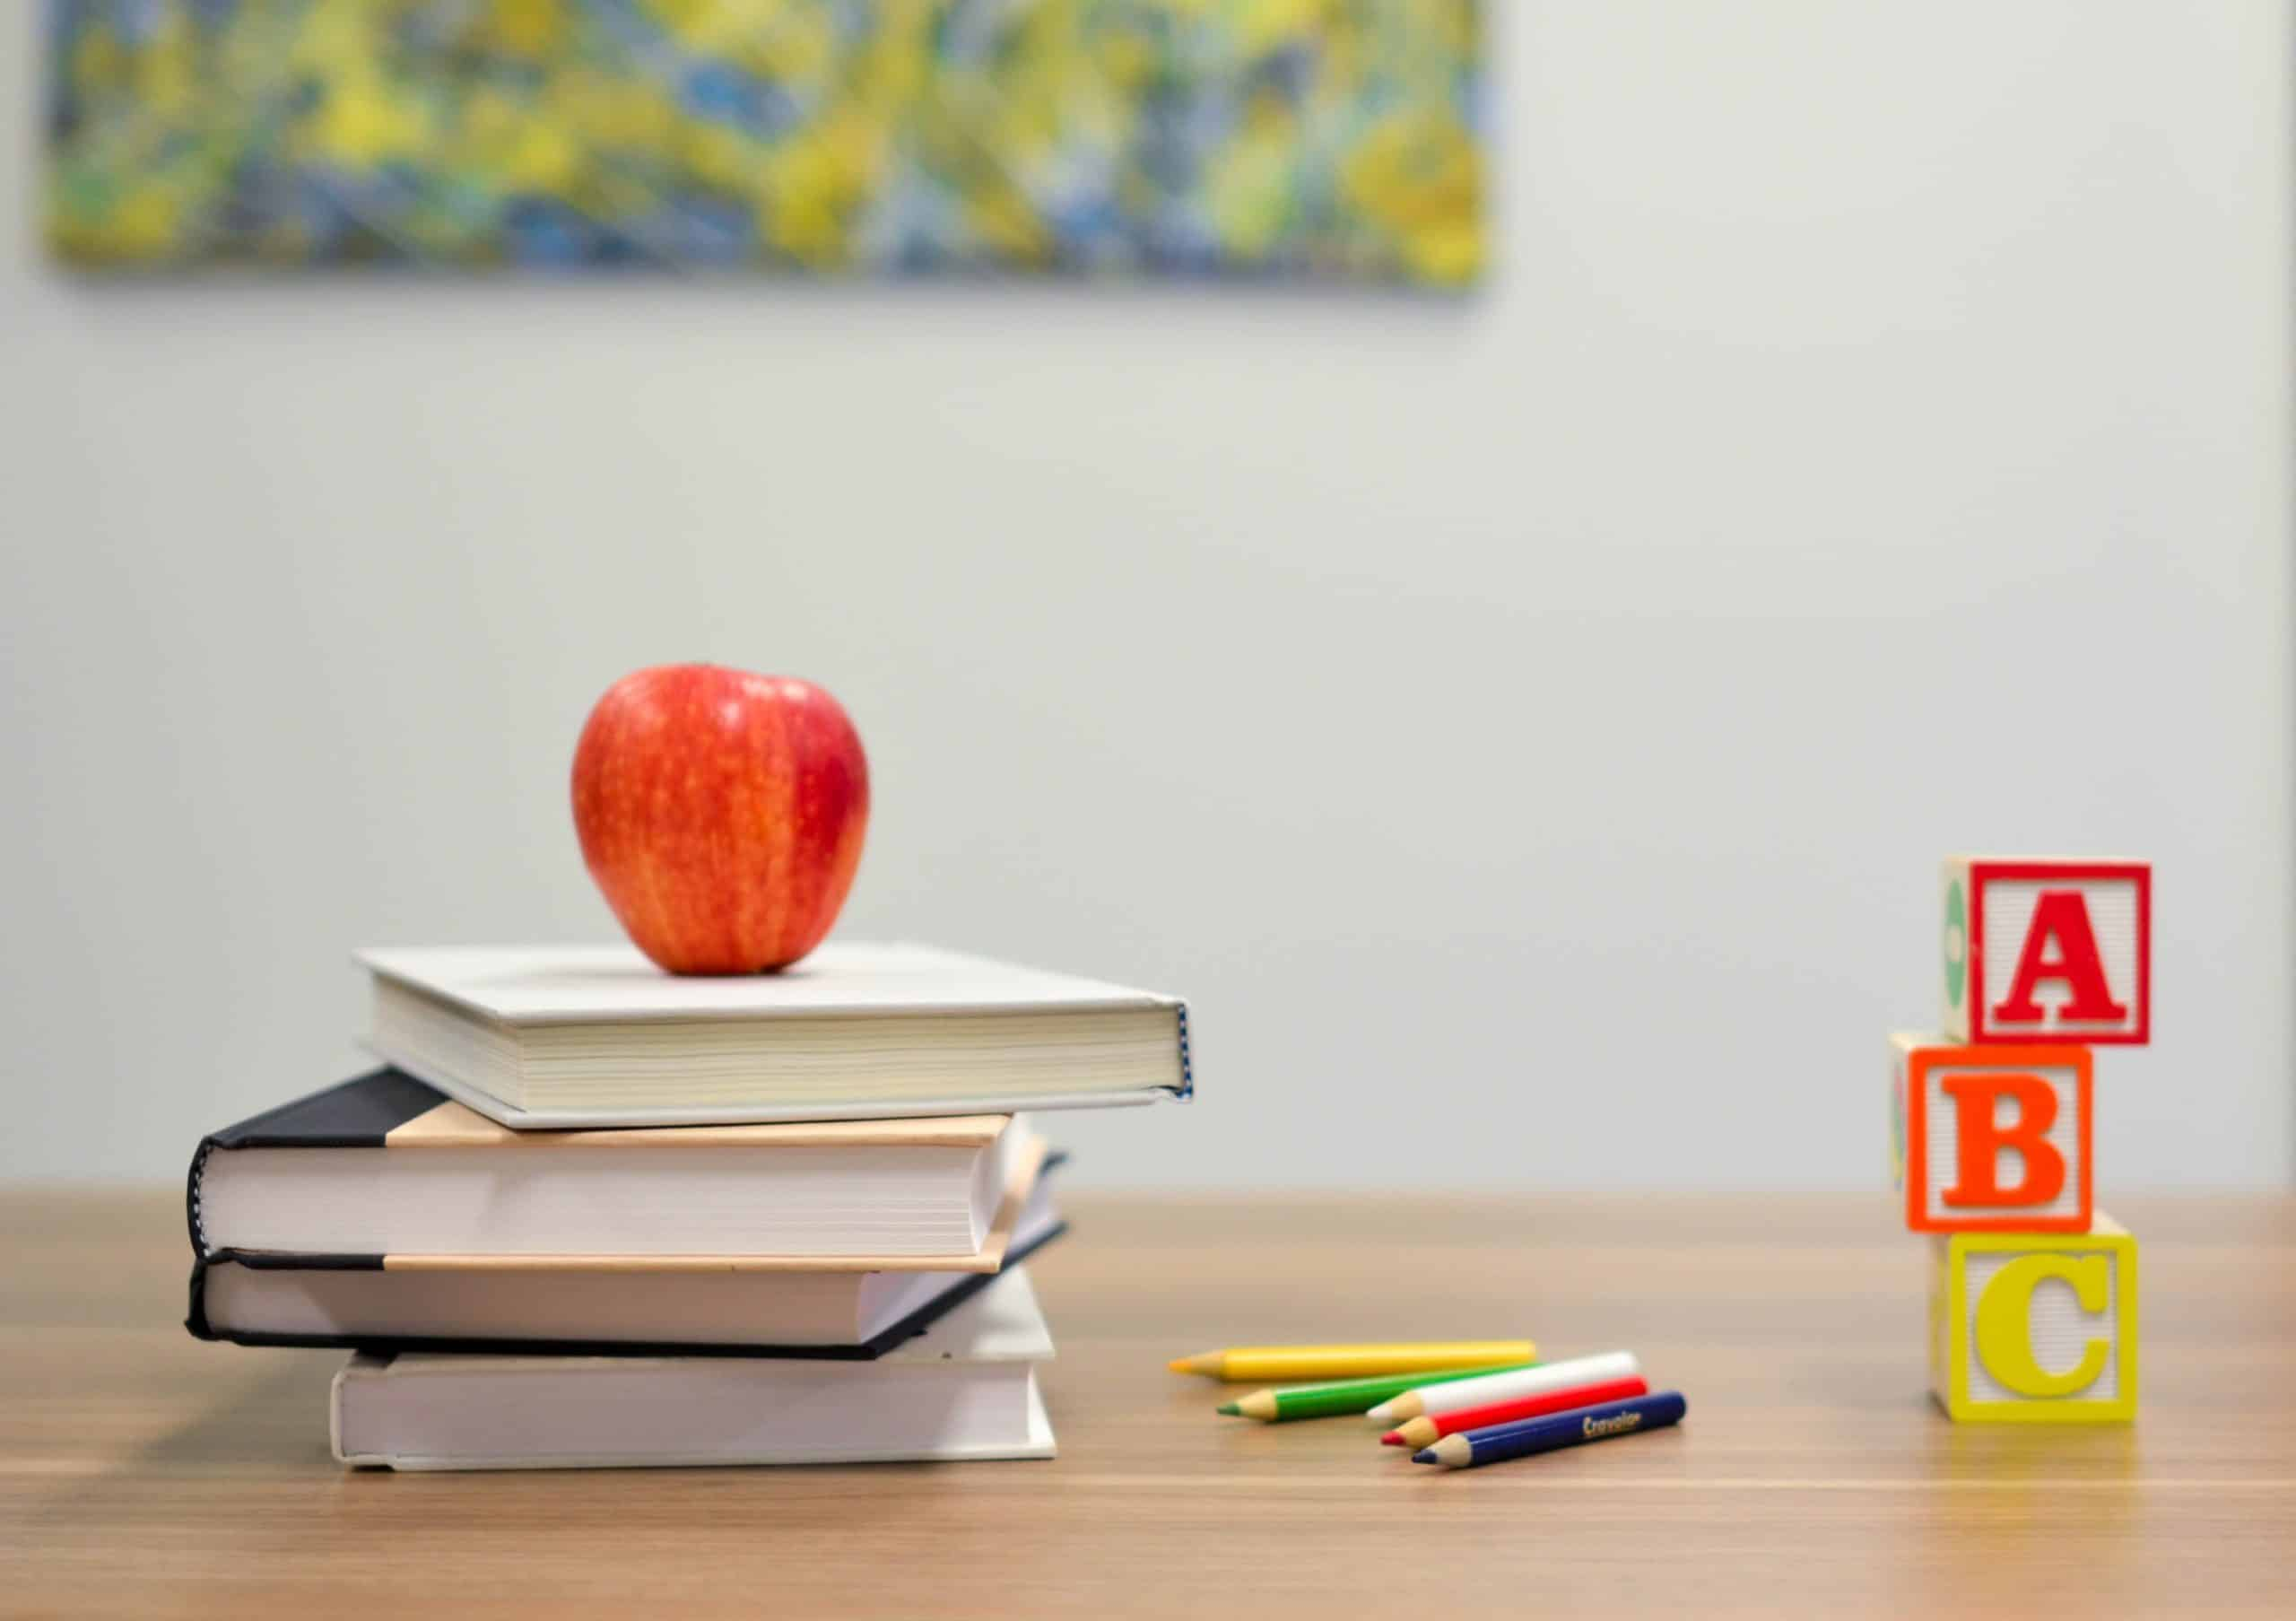 Books, apple, and pencils on a wooden desk